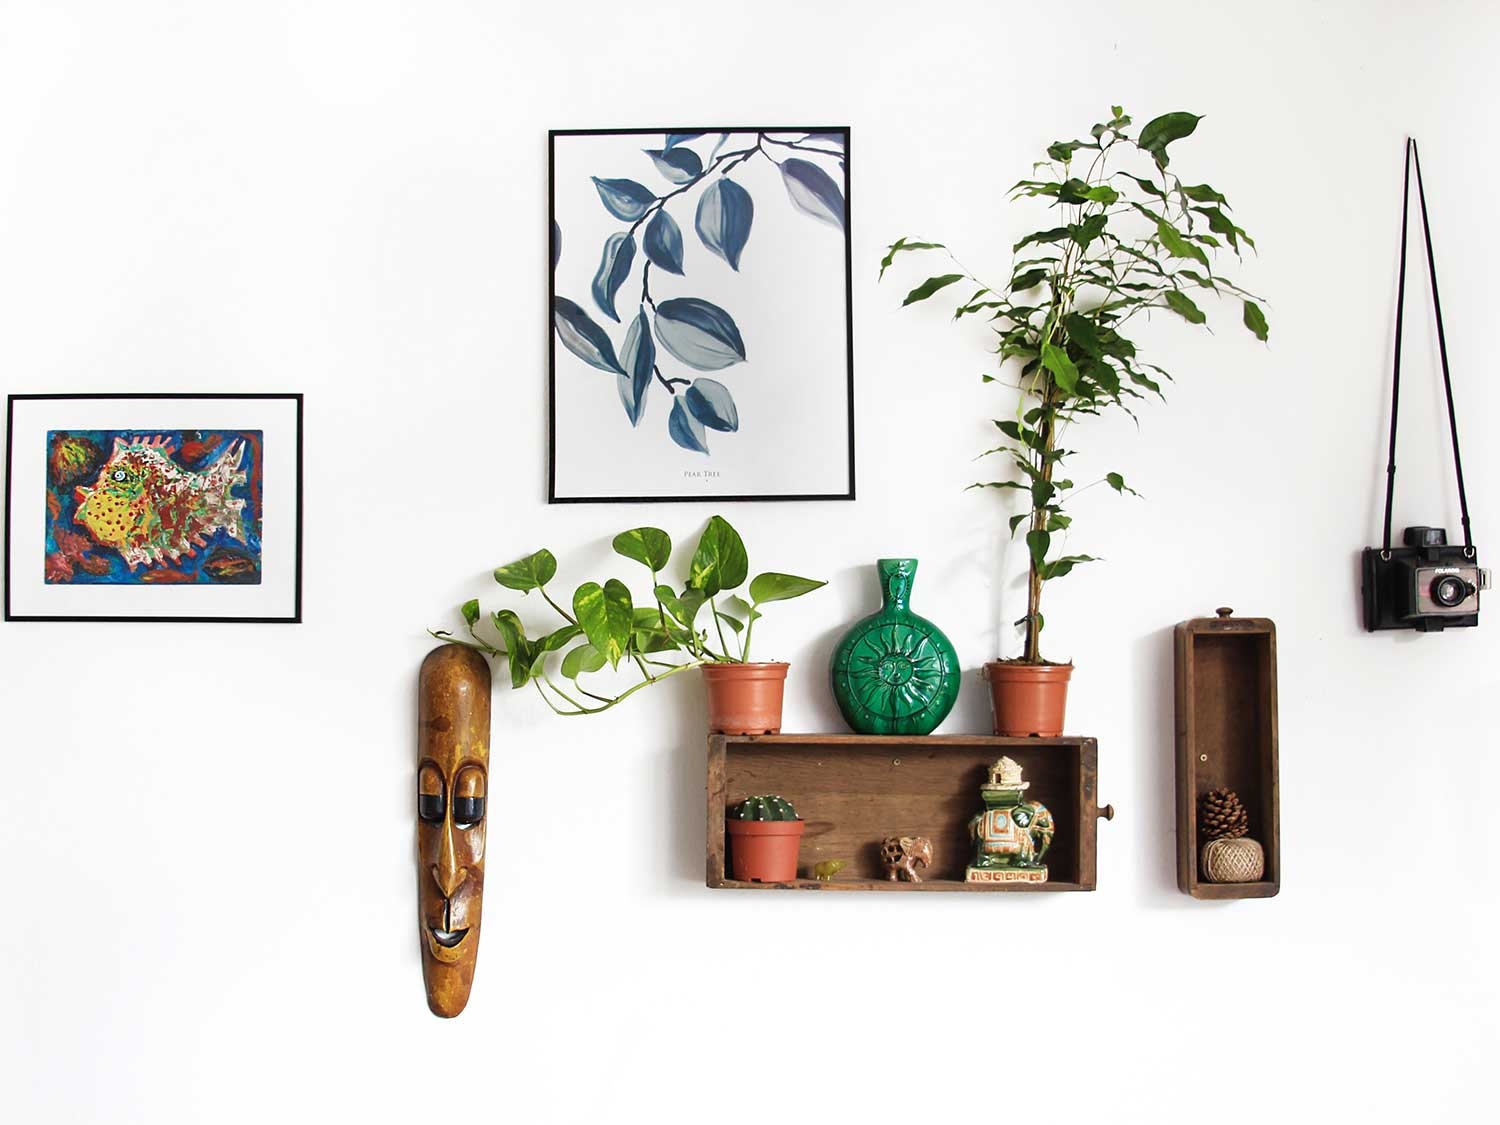 Frames hanging on wall with shelf and decorations.